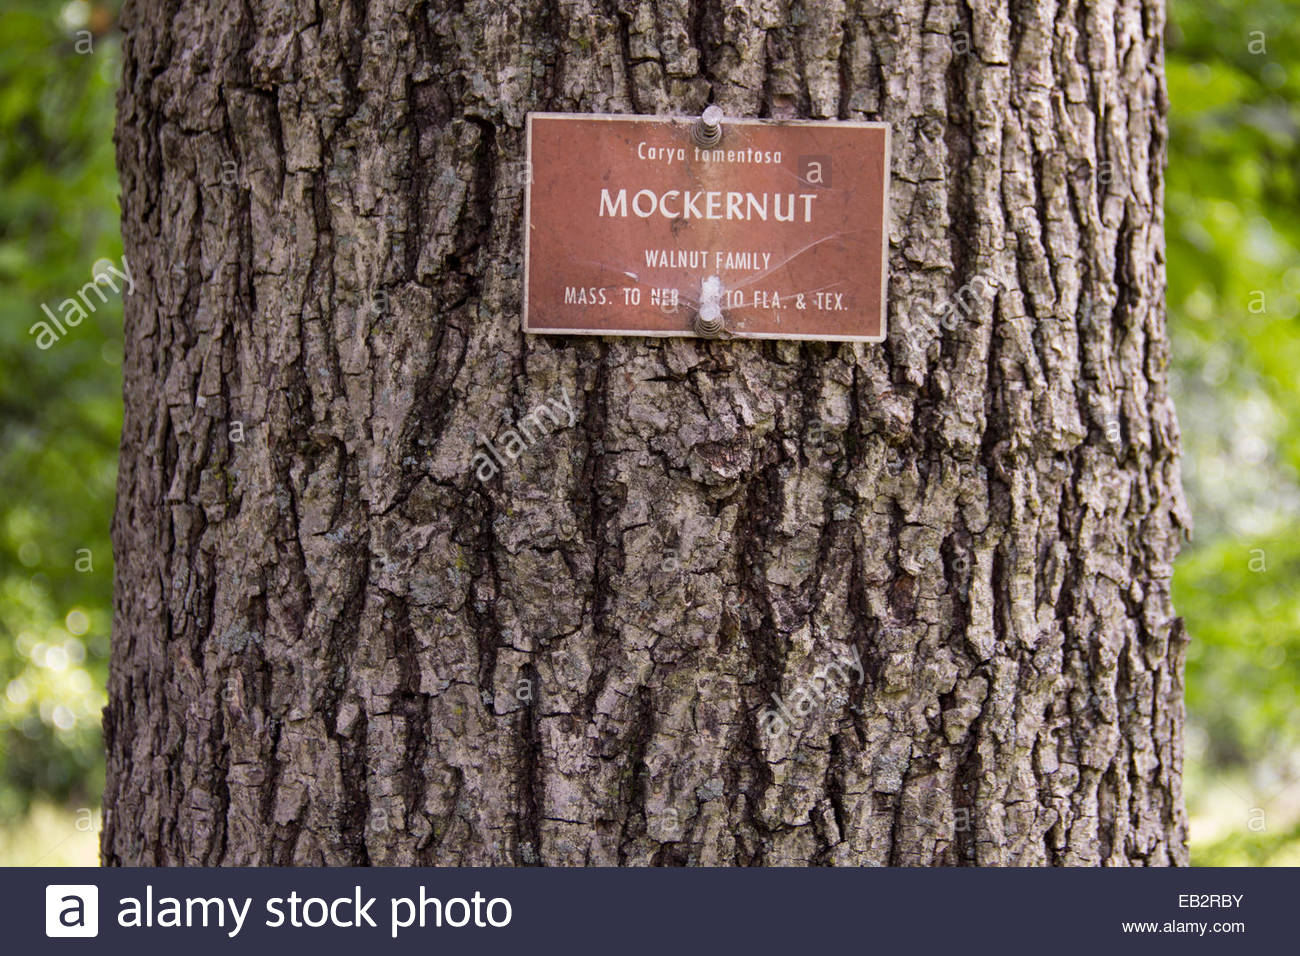 Close view of the bark and trunk a mockernut hickory